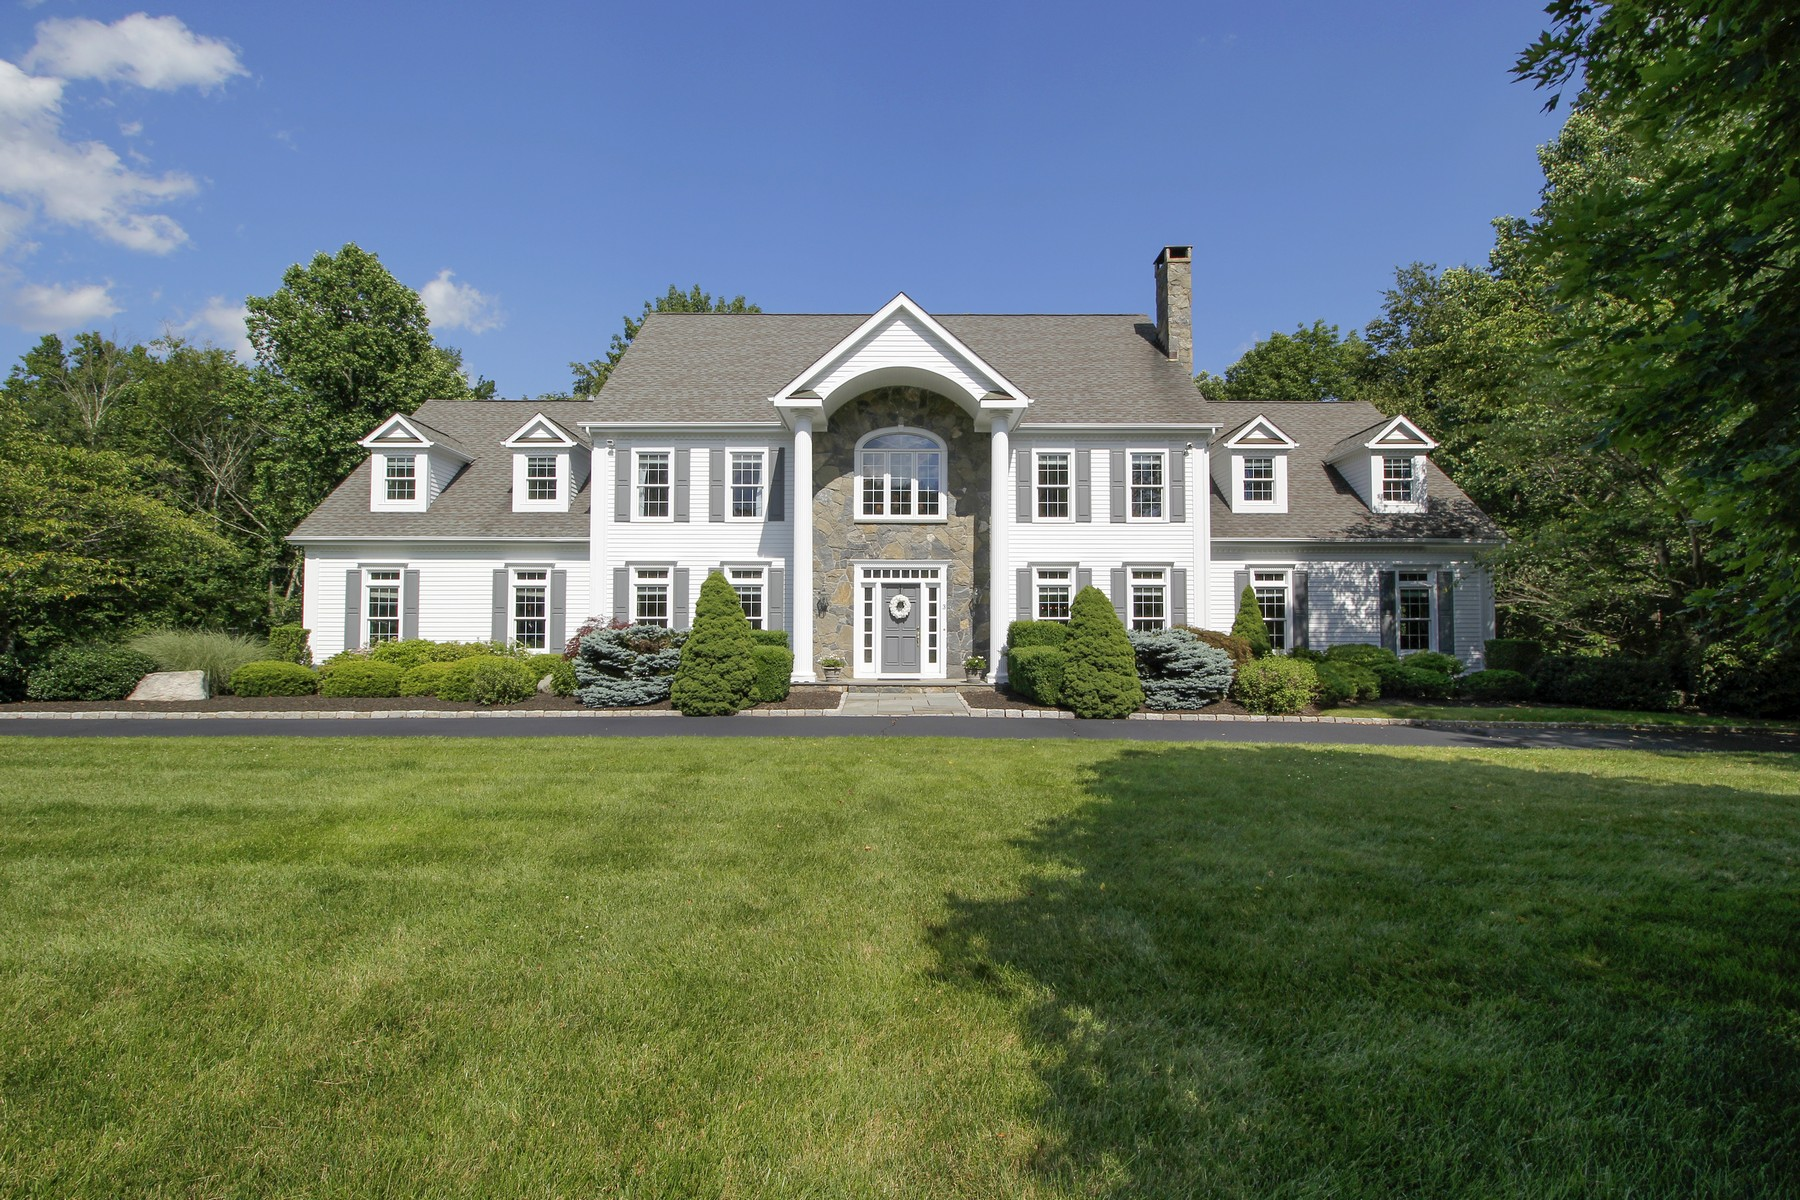 Casa Unifamiliar por un Venta en TIMELESS APPEAL 3 Robin Hood Lane Easton, Connecticut 06612 Estados Unidos